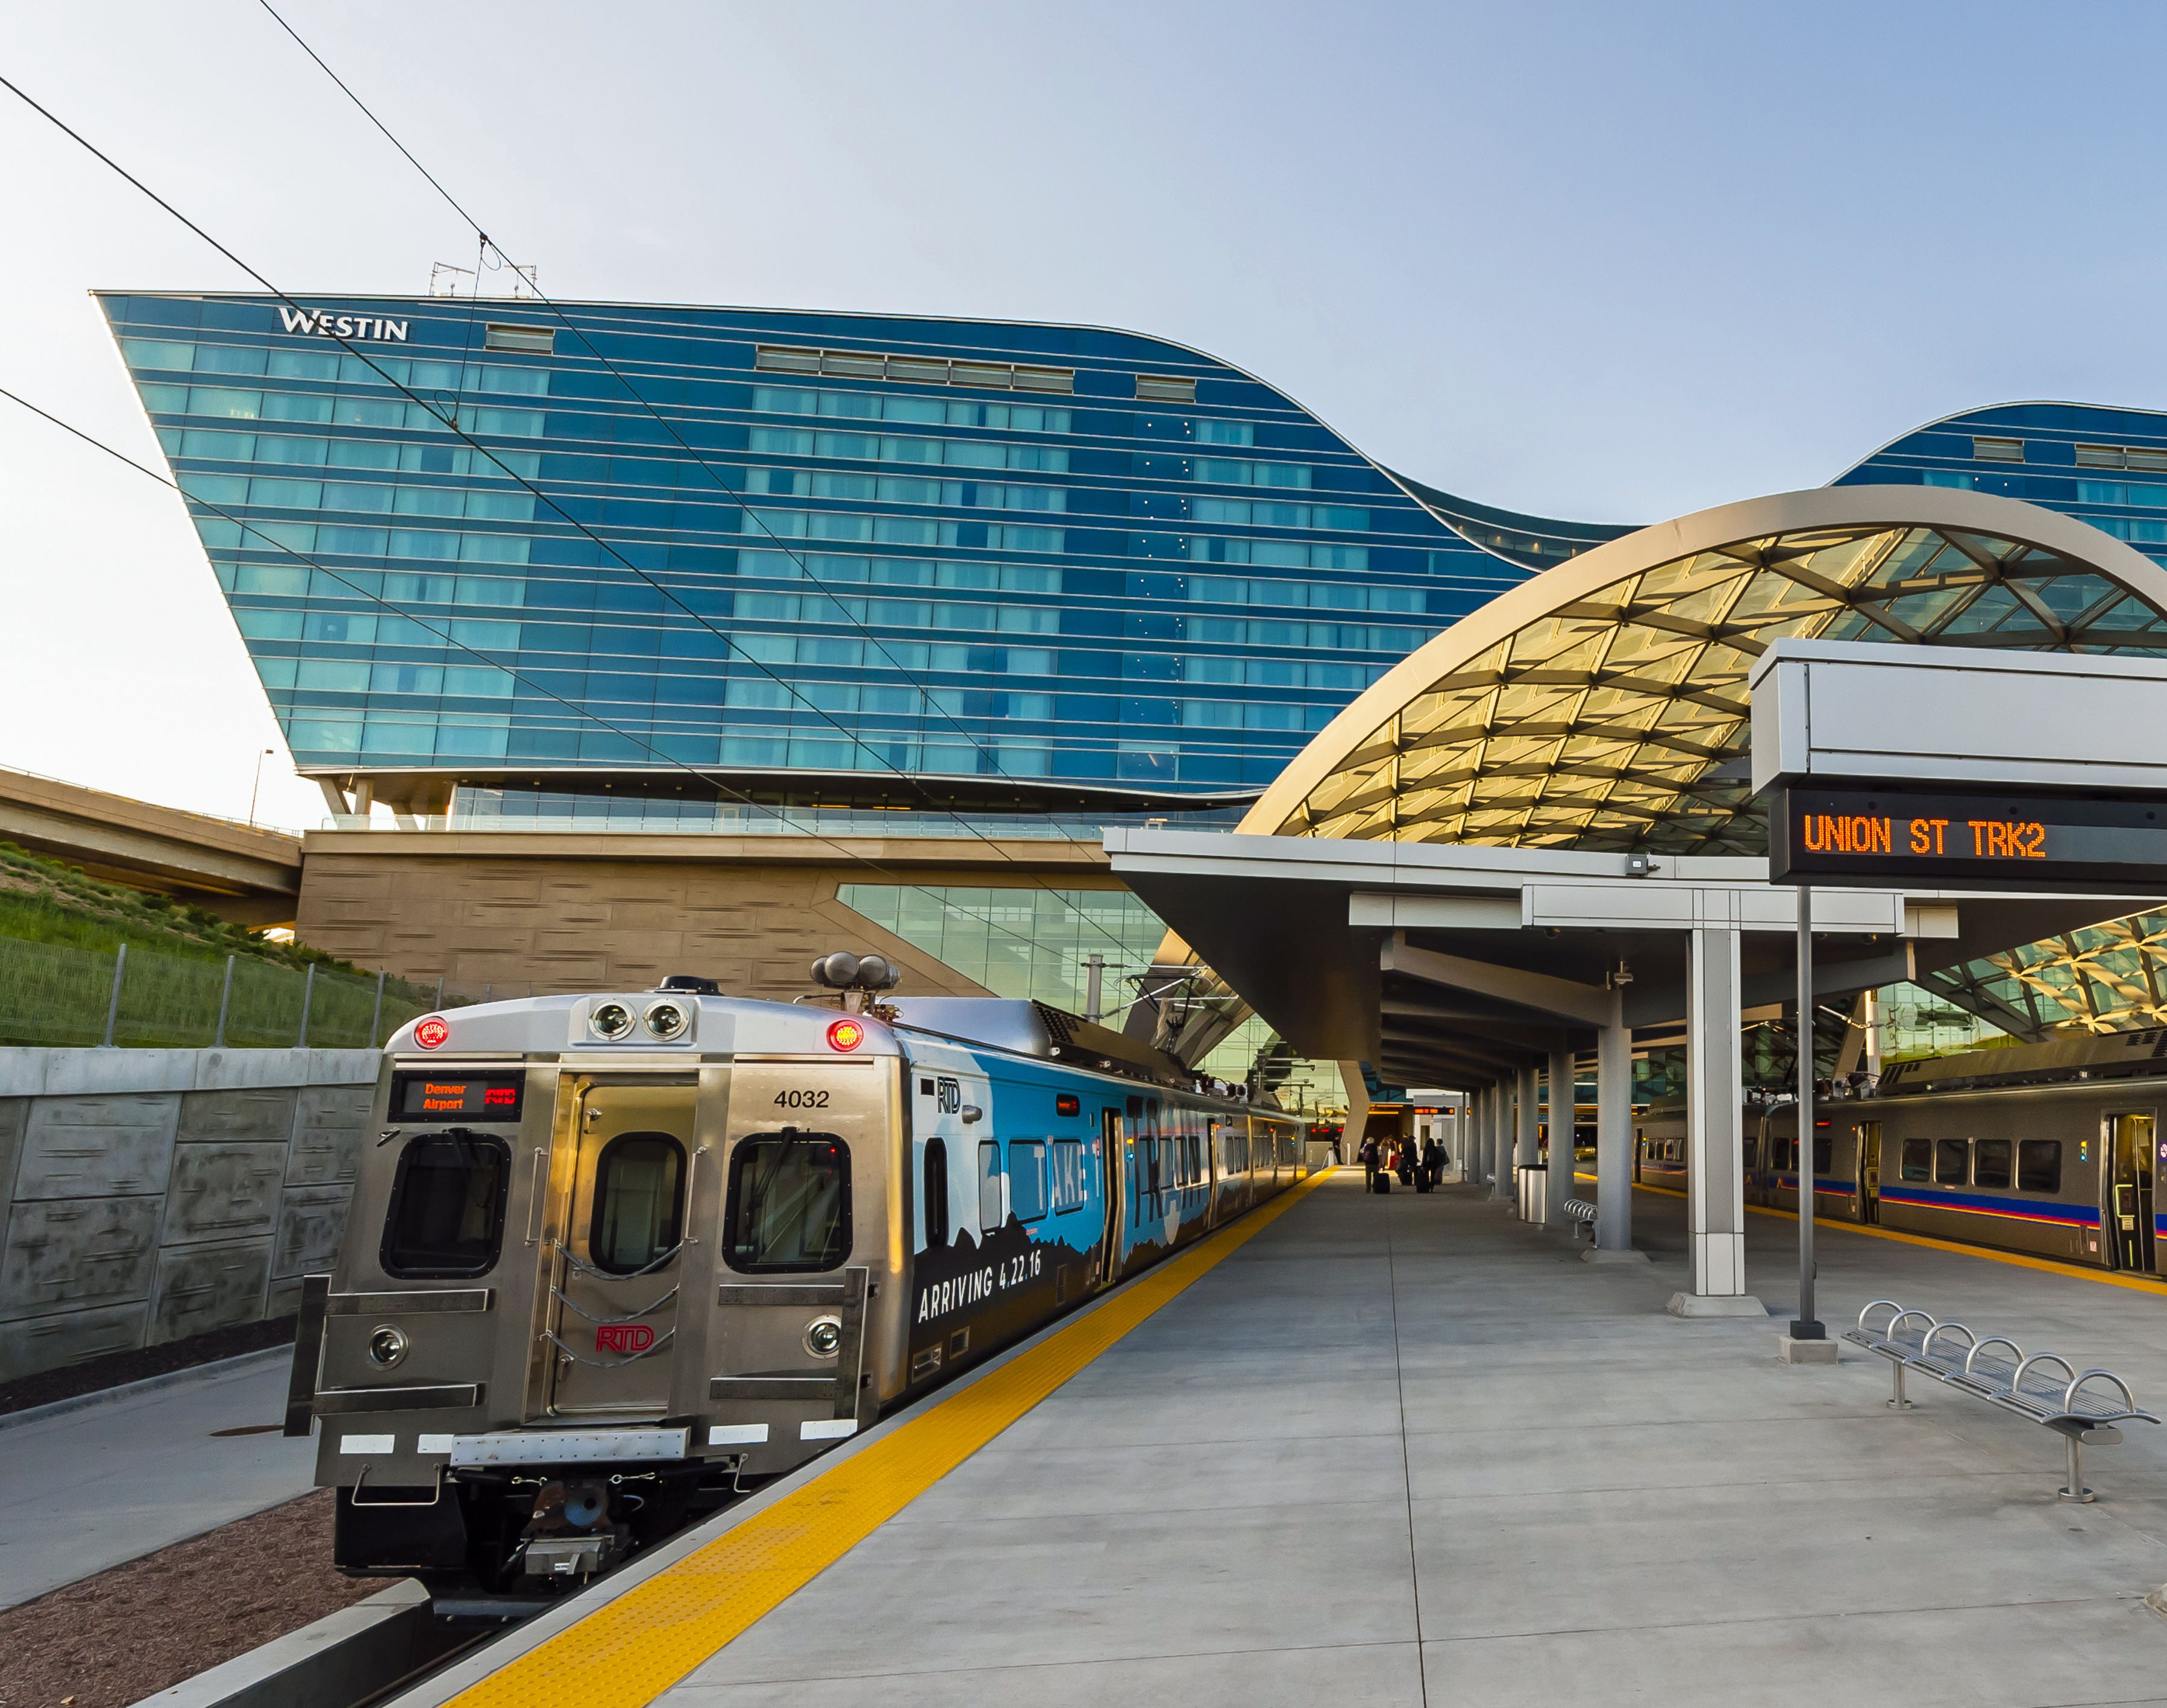 Denver airport terminals are connected to the Westin hotel by train.